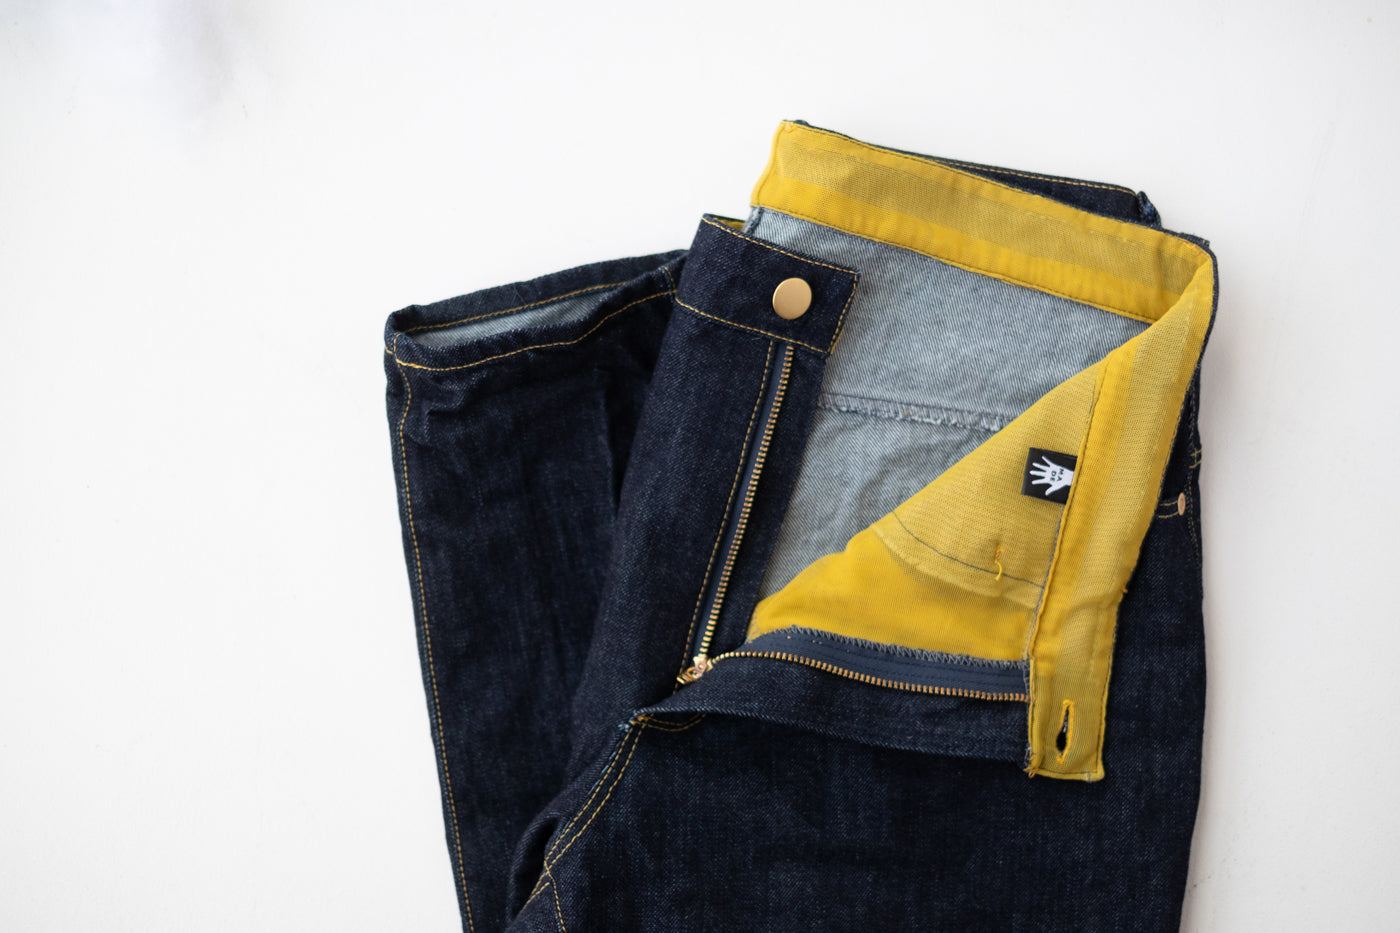 Demin jeans laying flat, folded on a white background.  The zipper is unzipped, folded back to show the yellow mesh lining with a custom label.